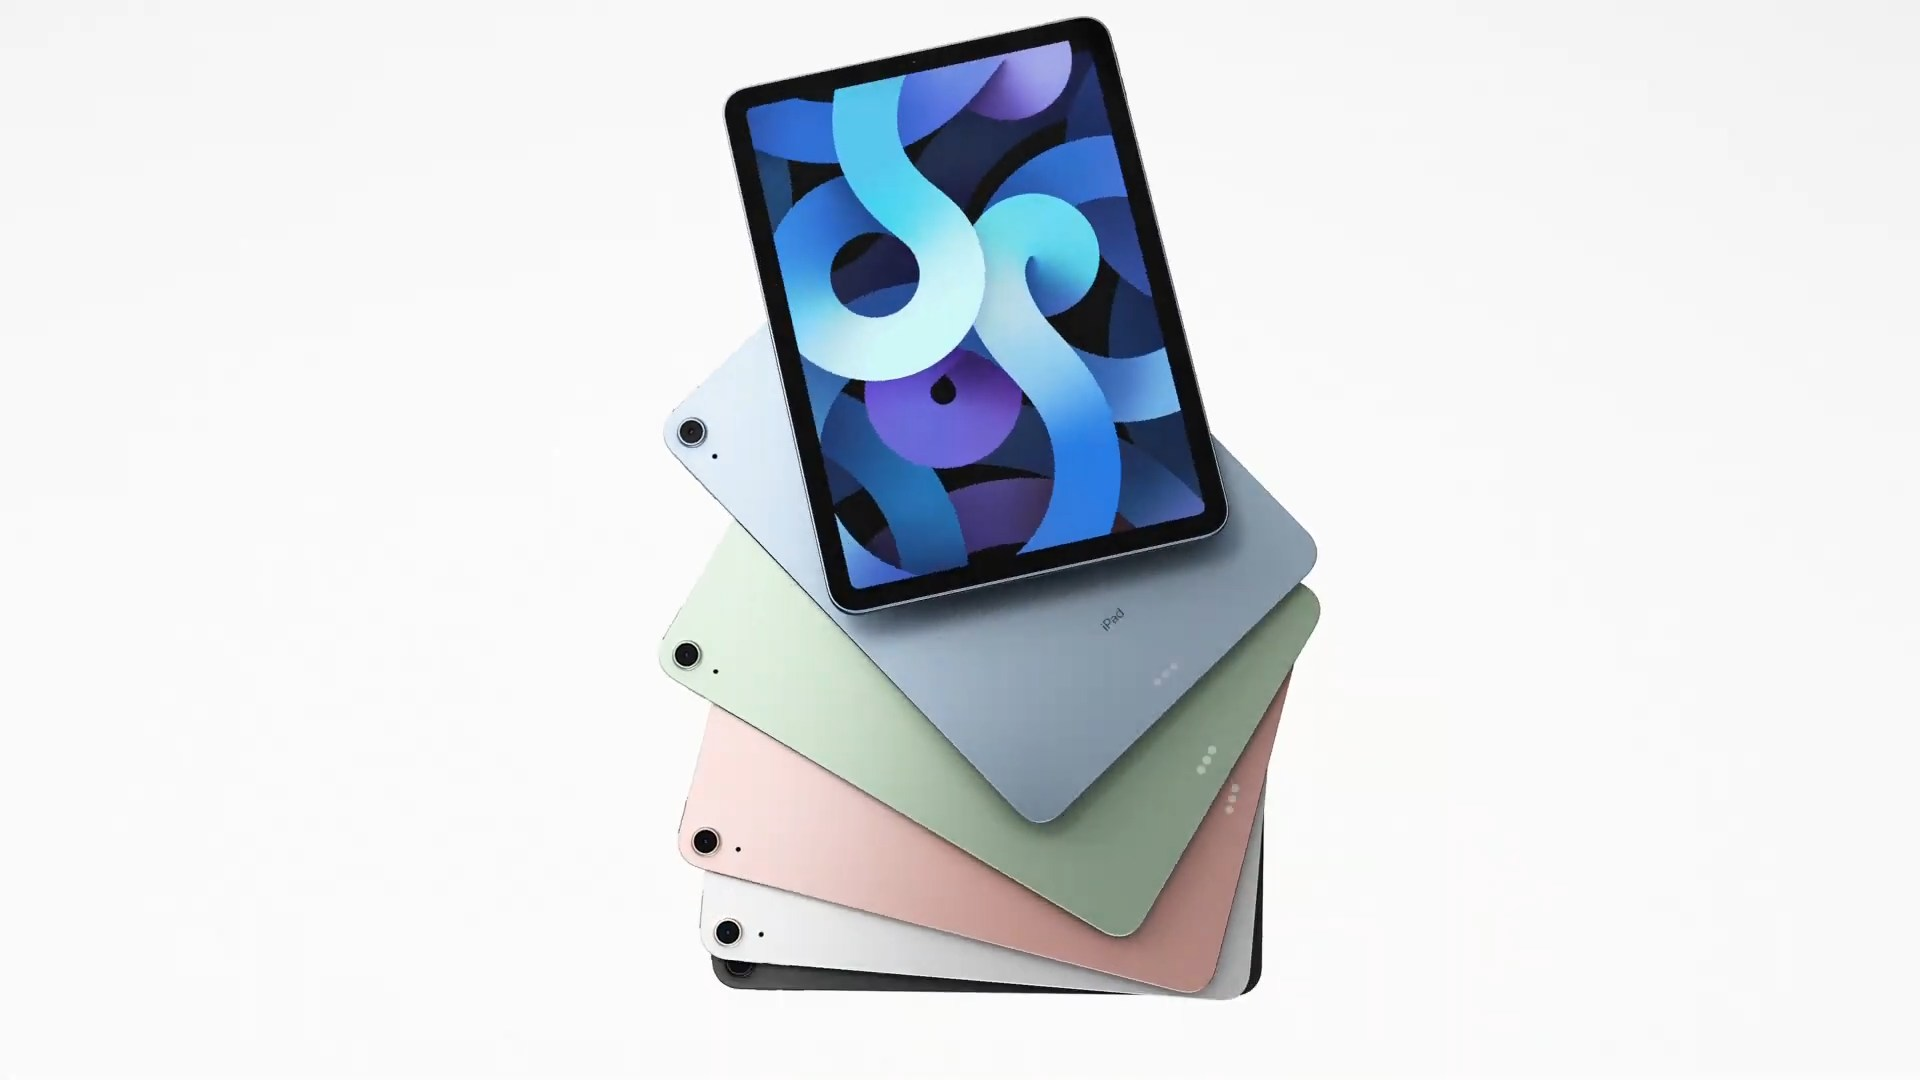 Apple, Tablet, Ipad, Apple Ipad, iPad air, Apple iPad air, iPad Air 4, iPad Air 2020